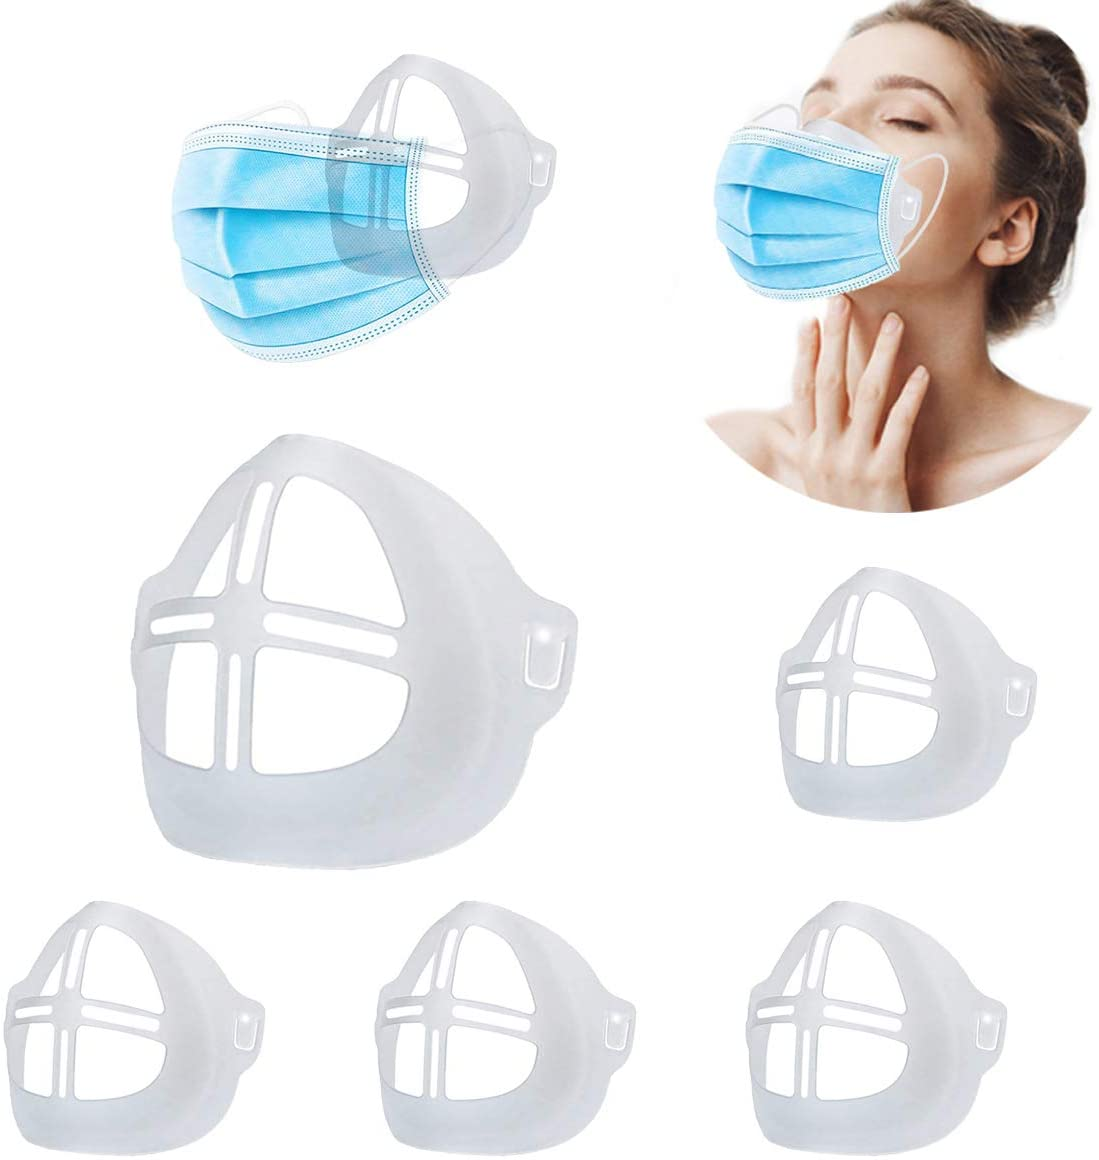 Reusable Adult 3D Silicone Mask Bracket Accessory, Printed Face Cover Mask Inner Support Frame Washable for Easy to Breathe & Talk Ideal Makeup Saver by Creating Breathable Space (5 Pcs A)